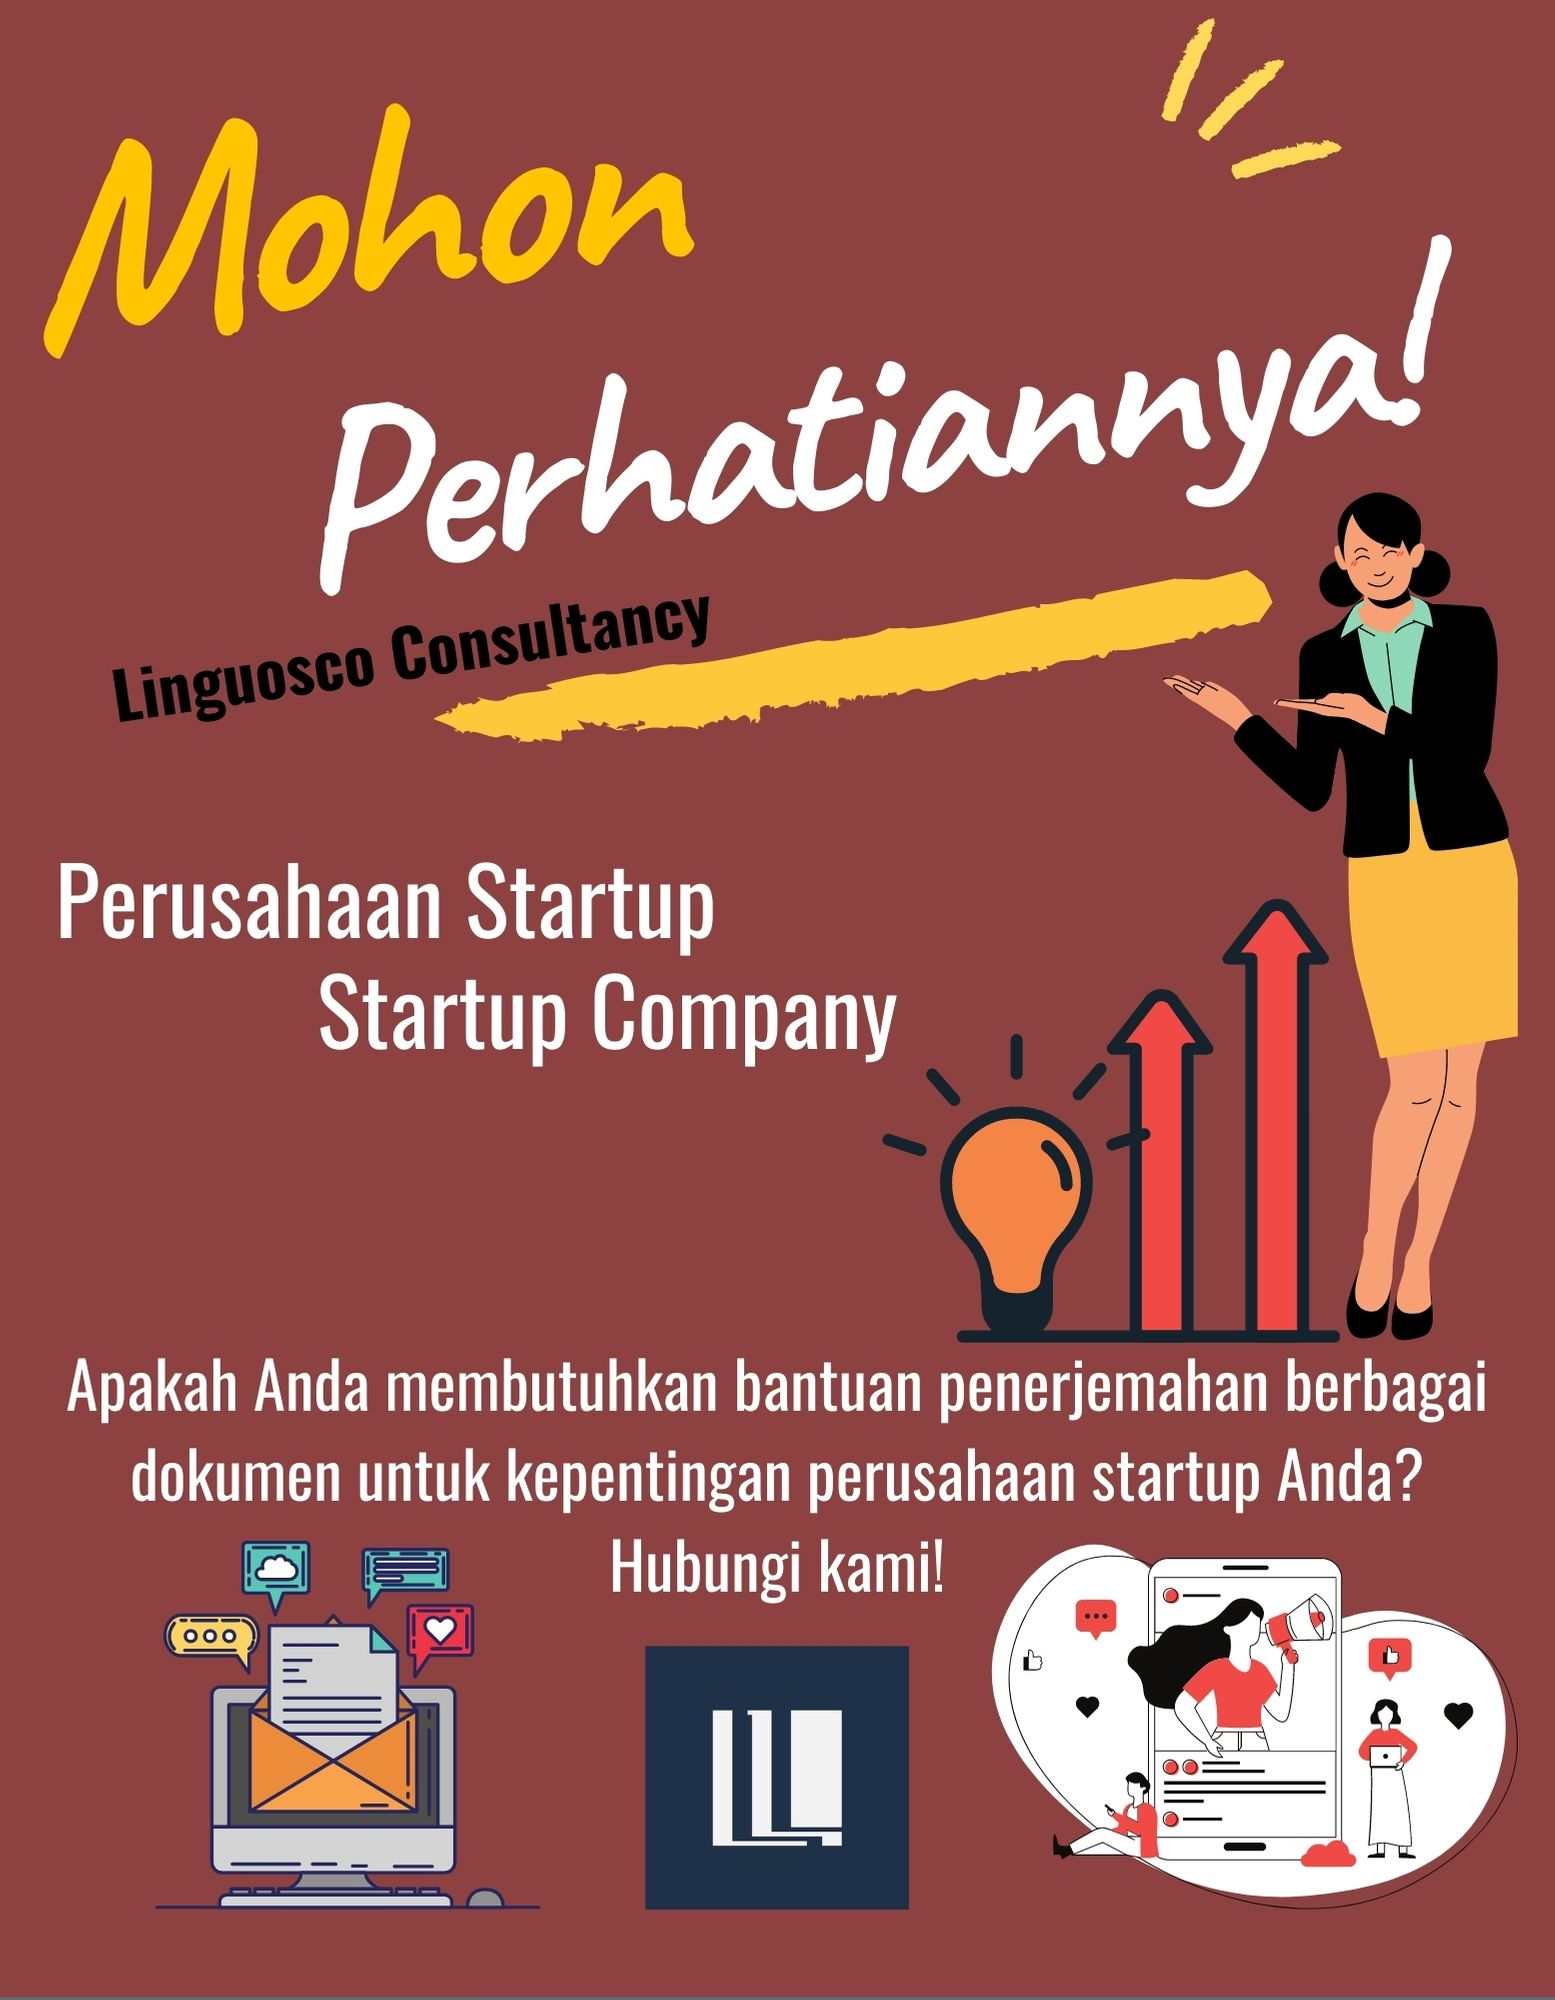 Attention to All Startup Companies